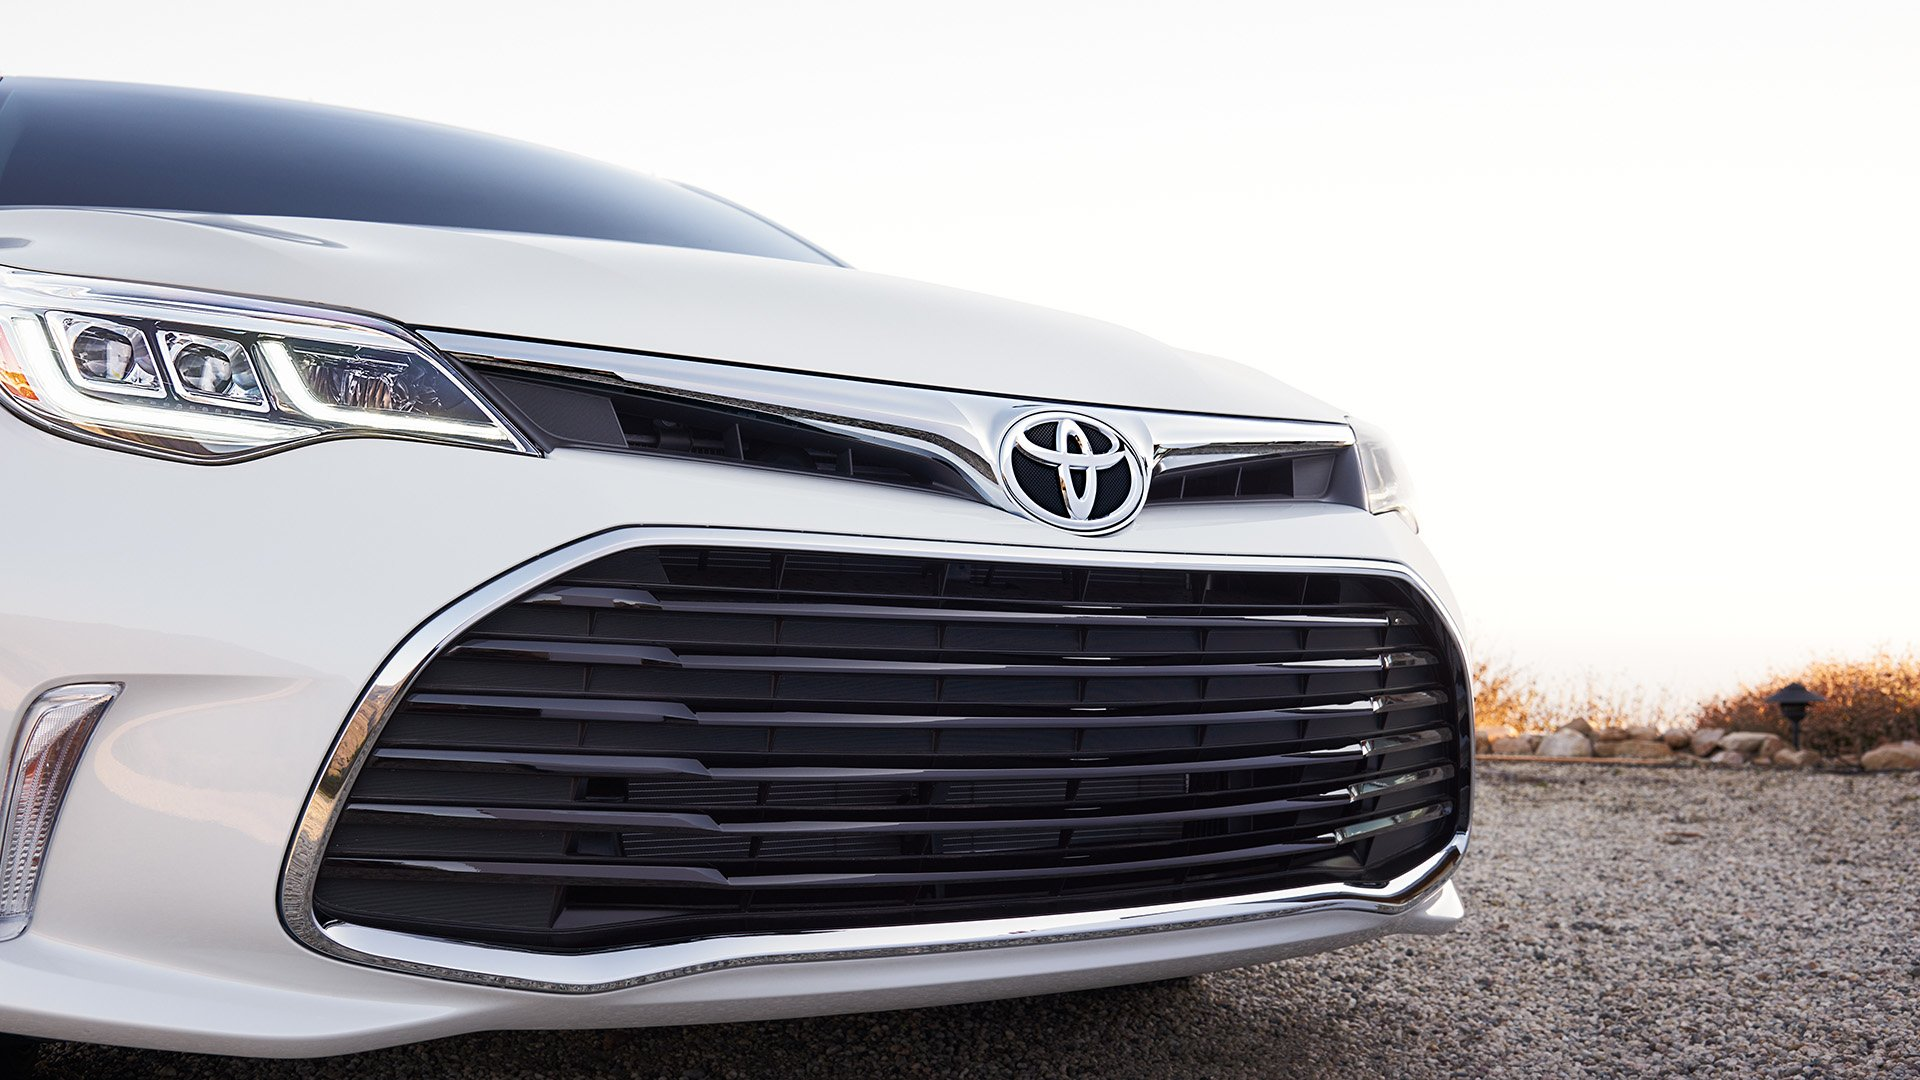 Toyota Corolla Owners Manual: Changing the engine switch positions